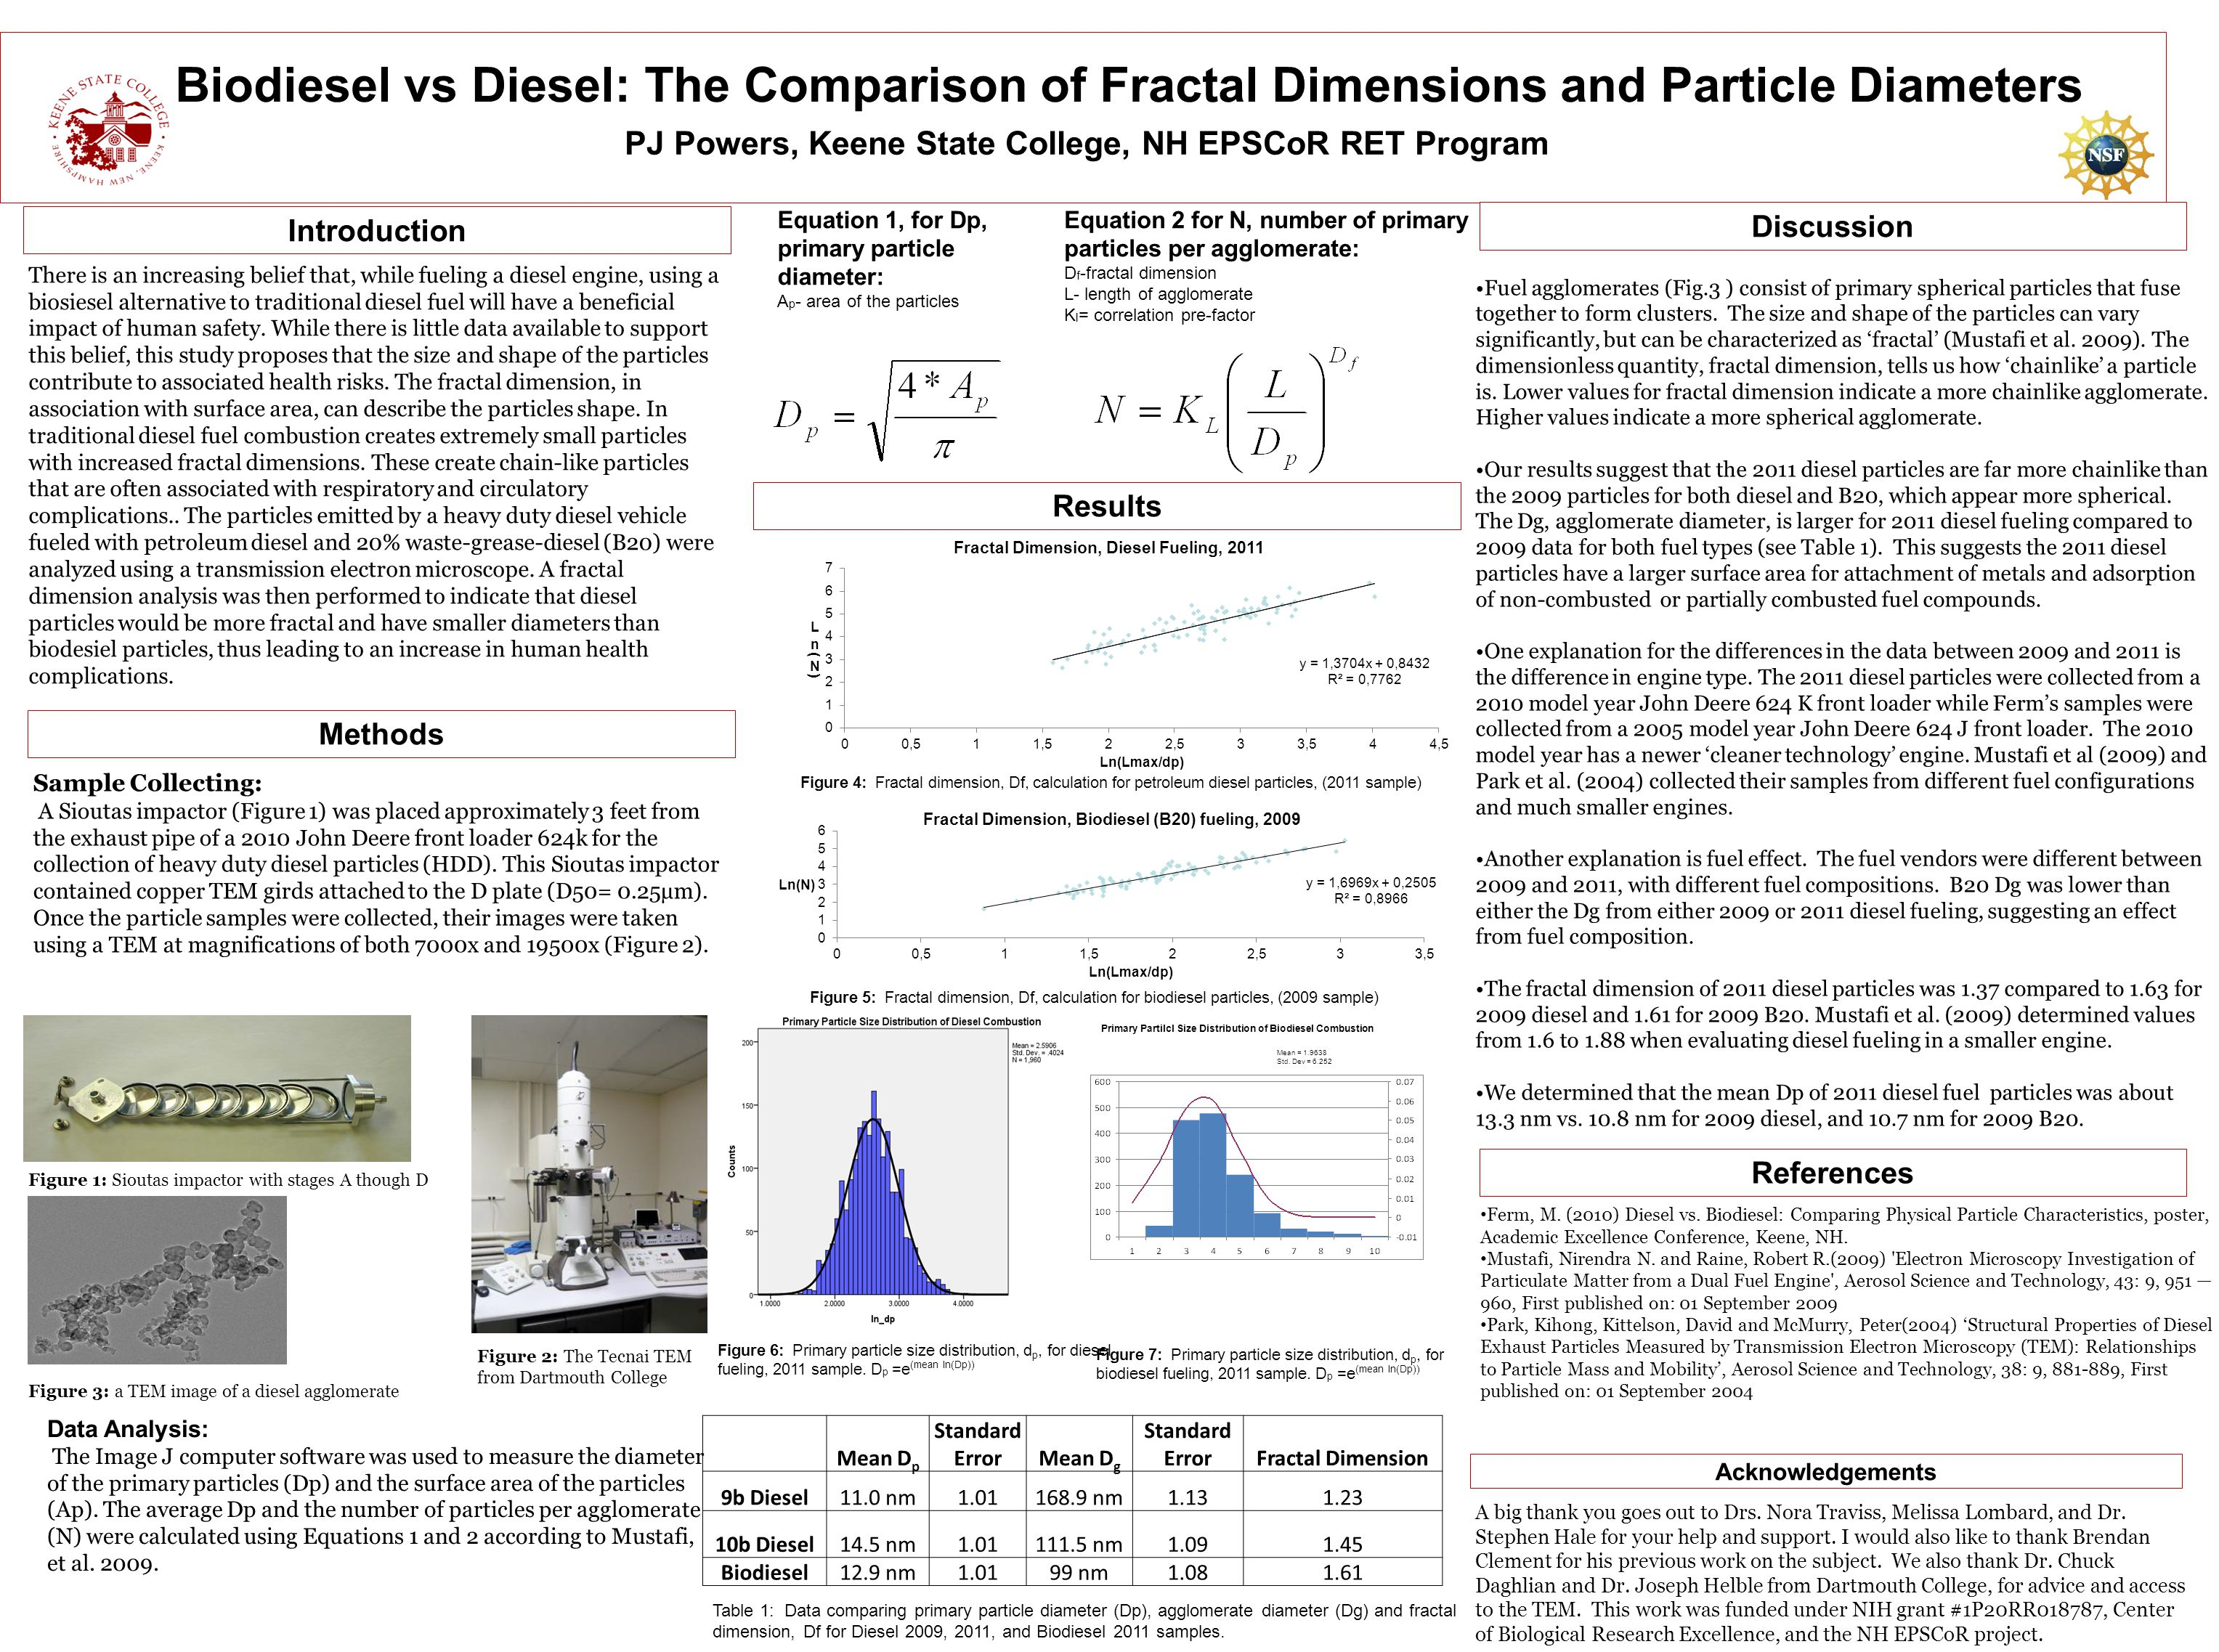 Biodiesel vs Diesel: The Comparison of Fractal Dimensions and Particle Diameters PJ Powers, Keene State College, NH EPSCoR RET Program There is an increasing belief that, while fueling a diesel engine, using a biosiesel alternative to traditional diesel fuel will have a beneficial impact of human safety.